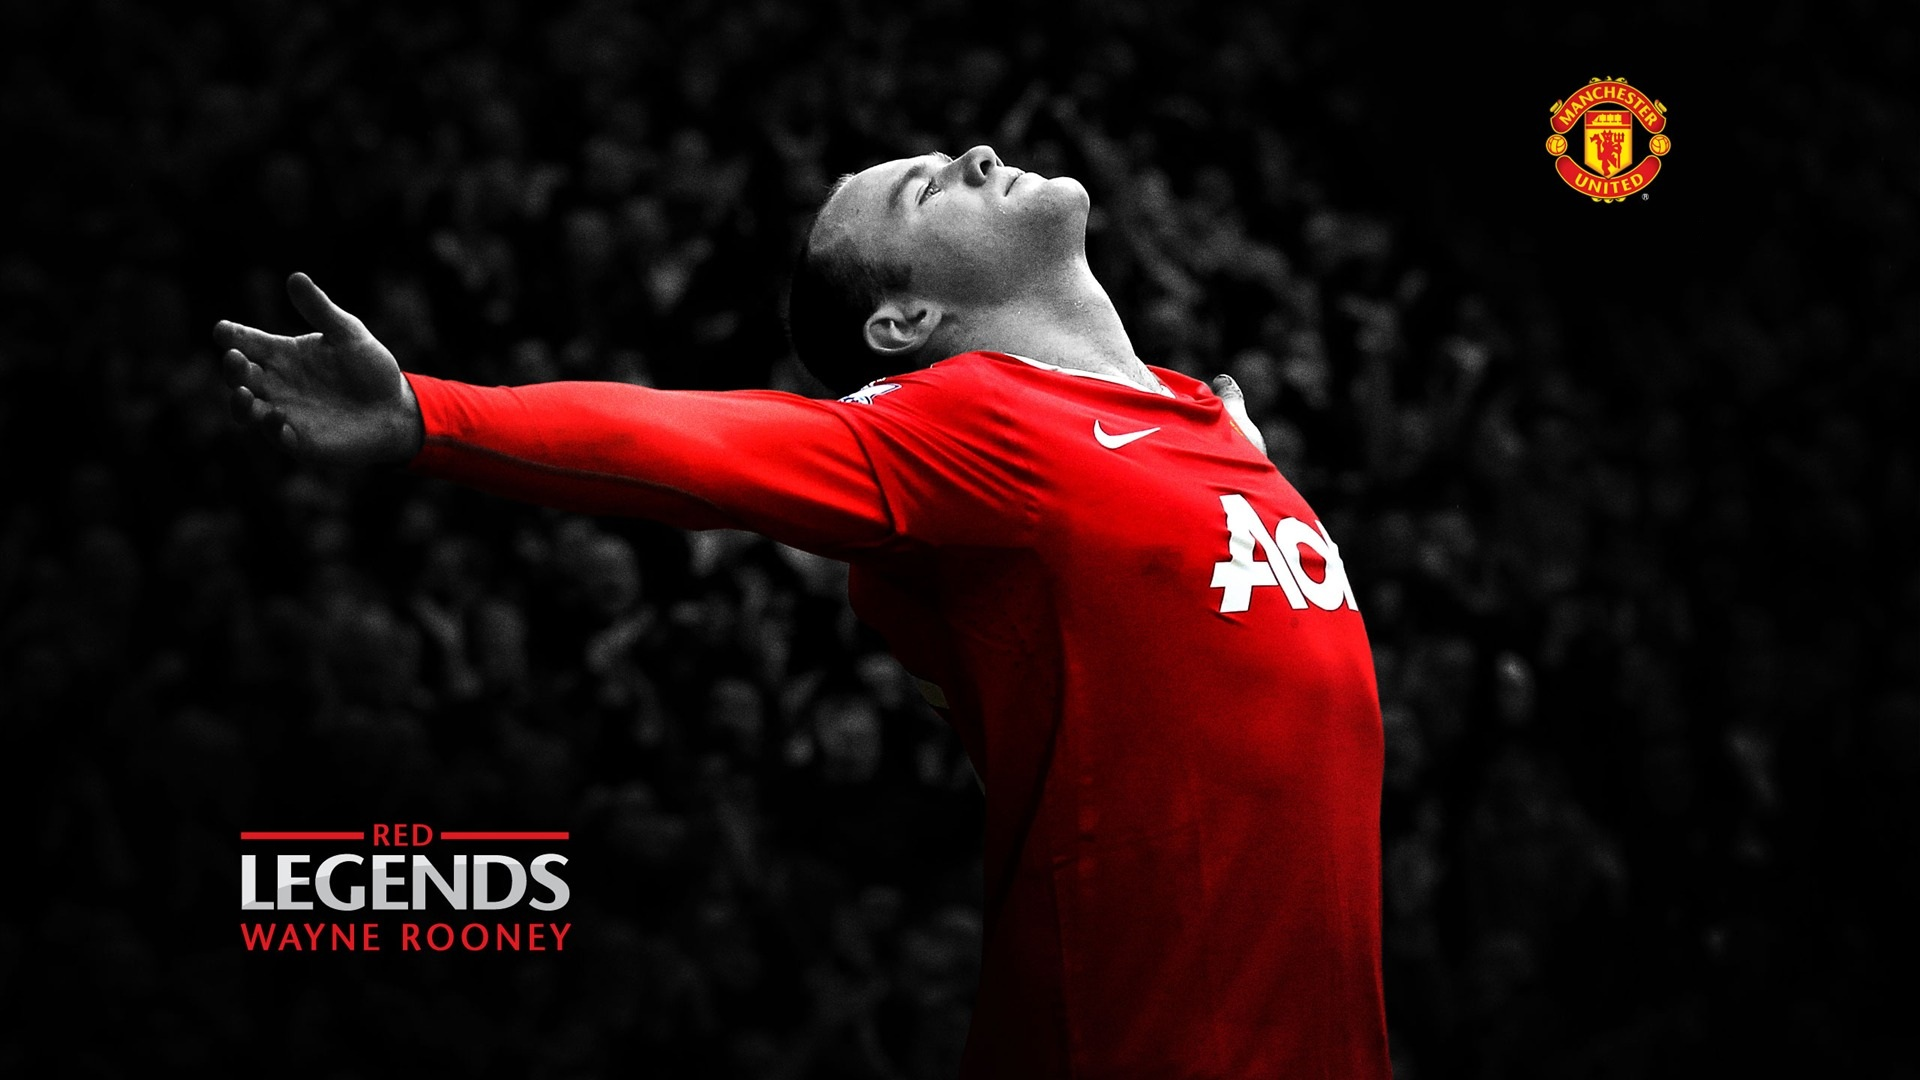 Manchester United Wallpapers Download Desktop Wallpaper Images 1920x1080